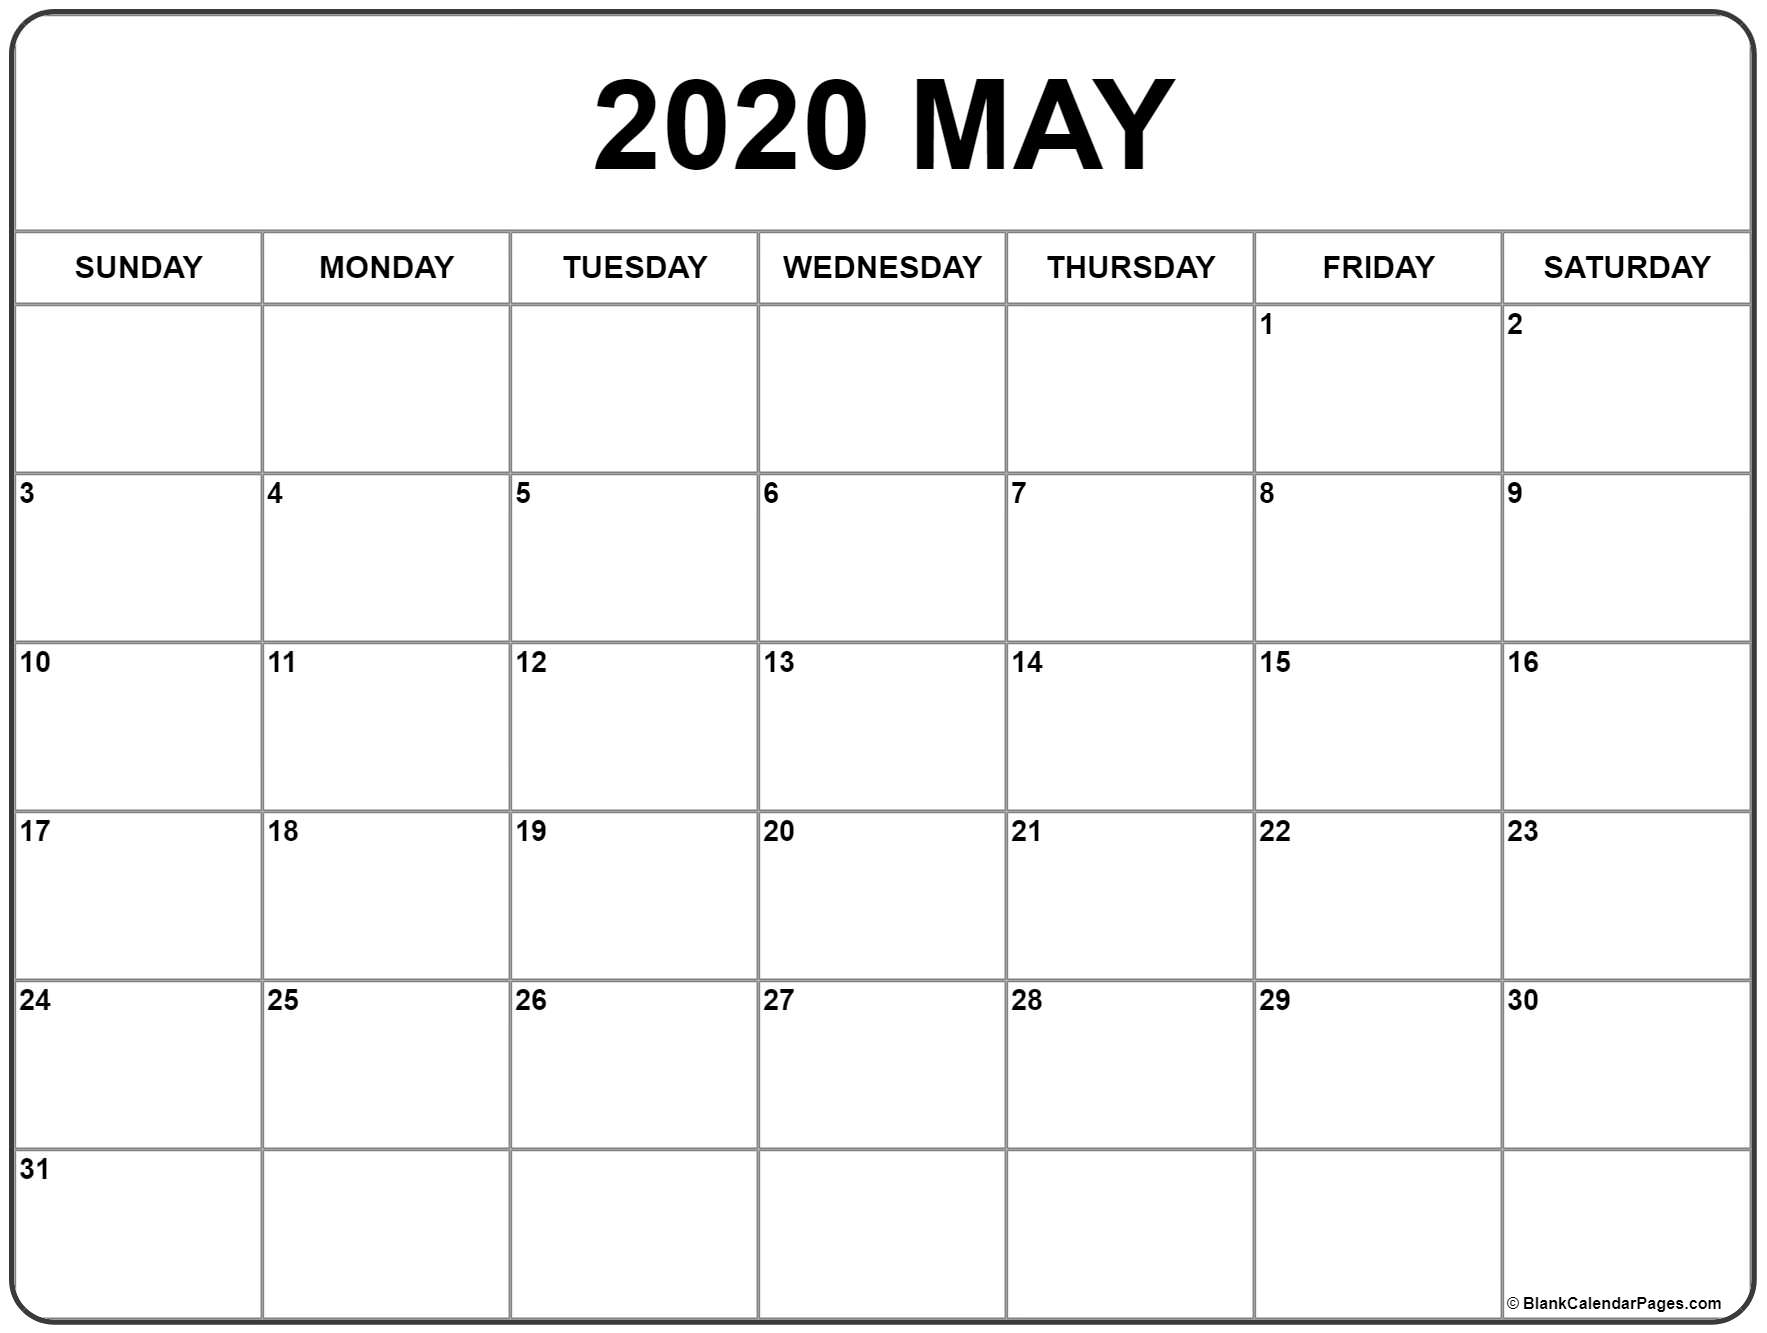 May 2020 Calendar | Free Printable Monthly Calendars pertaining to Large Numbers Free Printable Calendar 2020